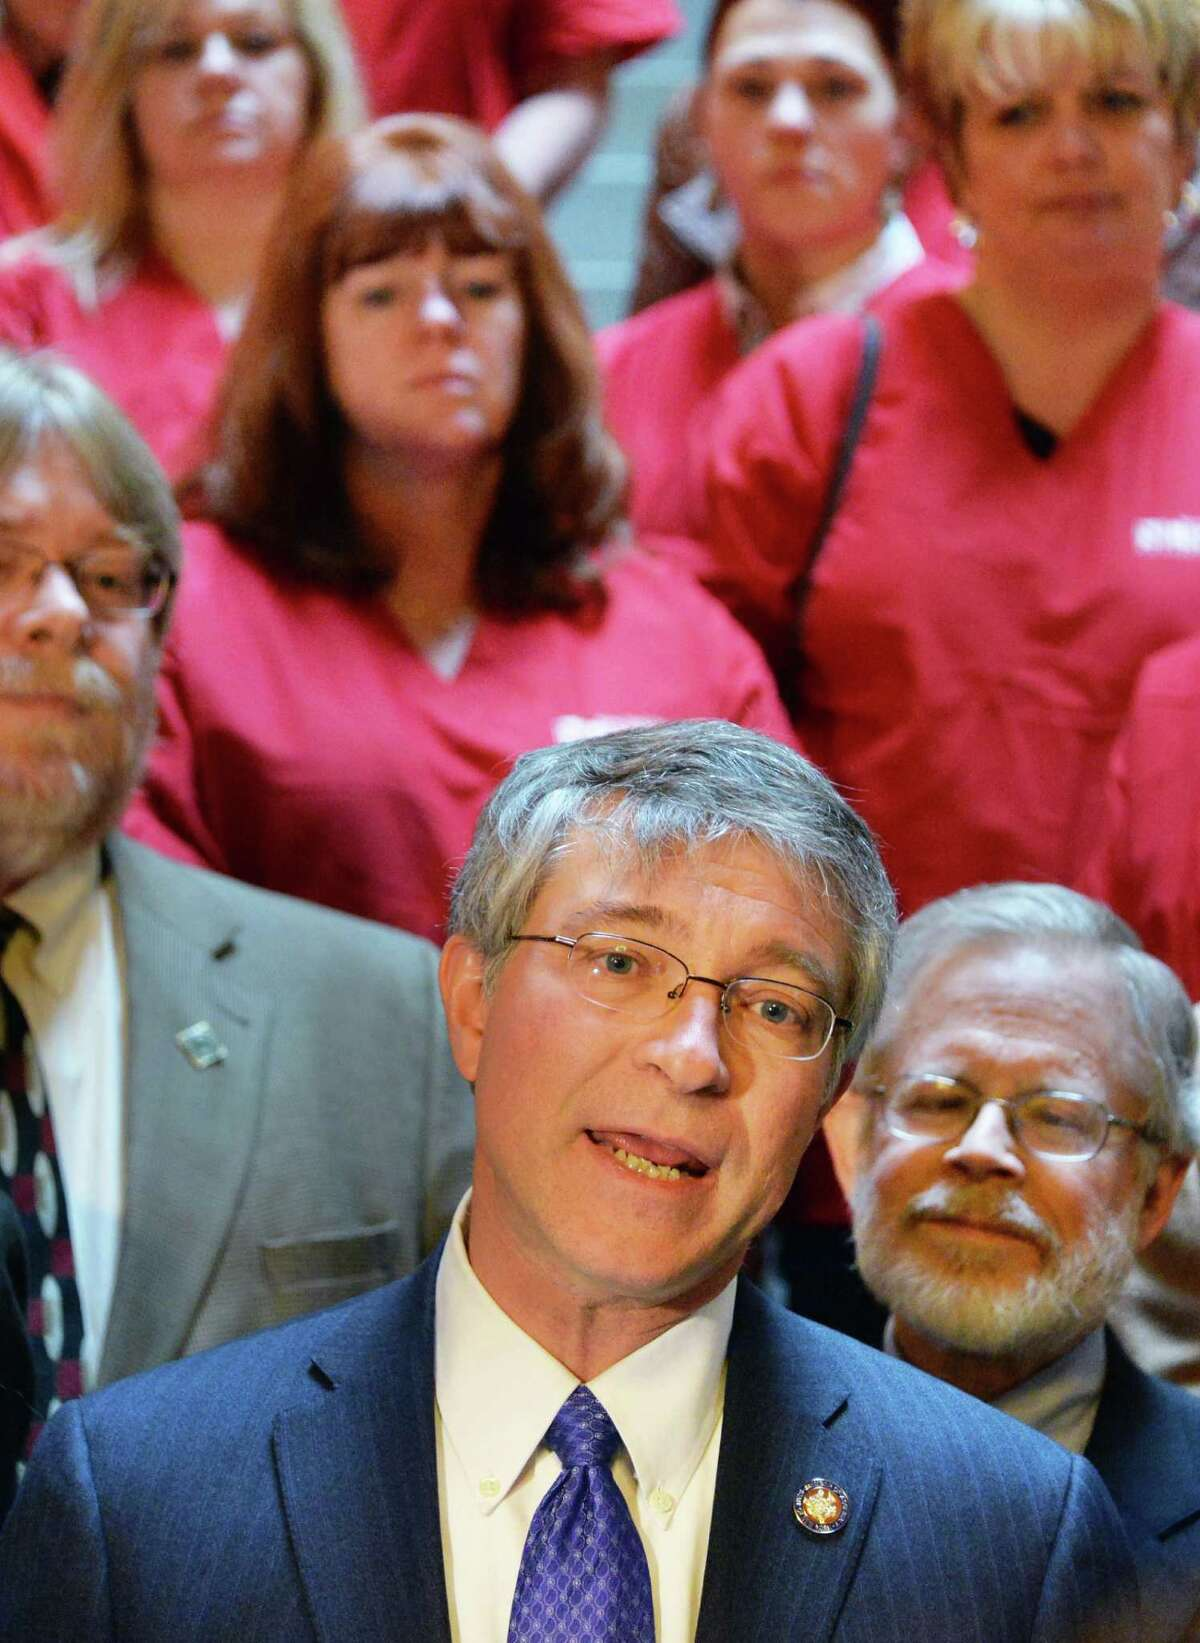 """Assemblyman Phil Steck speaks during a rally in support of """"New York Health"""" Tuesday Feb. 11, 2014, at the Capitol in Albany, NY. At right is Assembly Health Committee Chair Richard N. Gottfried. (John Carl D'Annibale / Times Union)"""